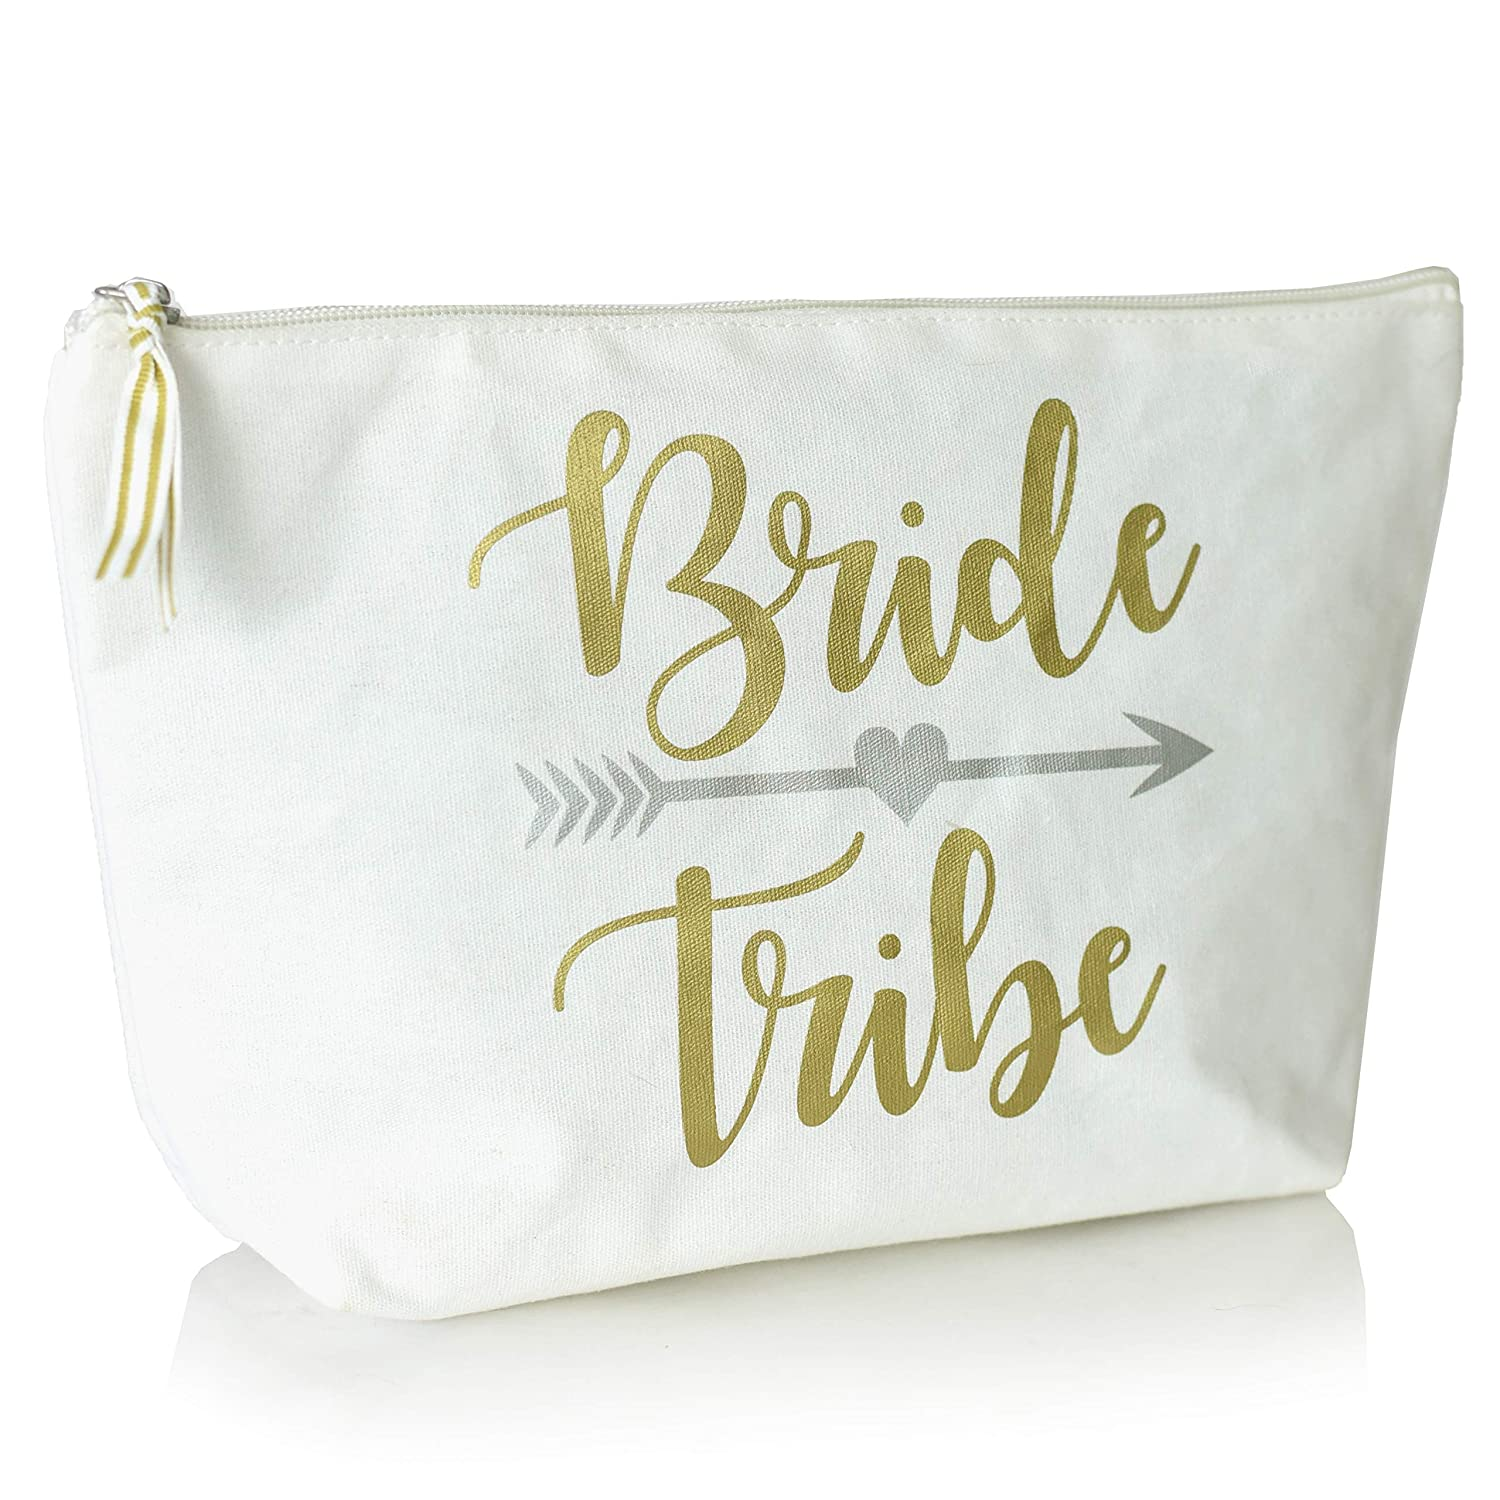 Cute Bridal Cosmetic Bag for Makeup Toiletry Travel- Large Portable Bride Tribe Pencil Pouch Dopp Kit- Case Handbag Organizer for Brushes and Accessories (White Bride Tribe in Gold Font Color)